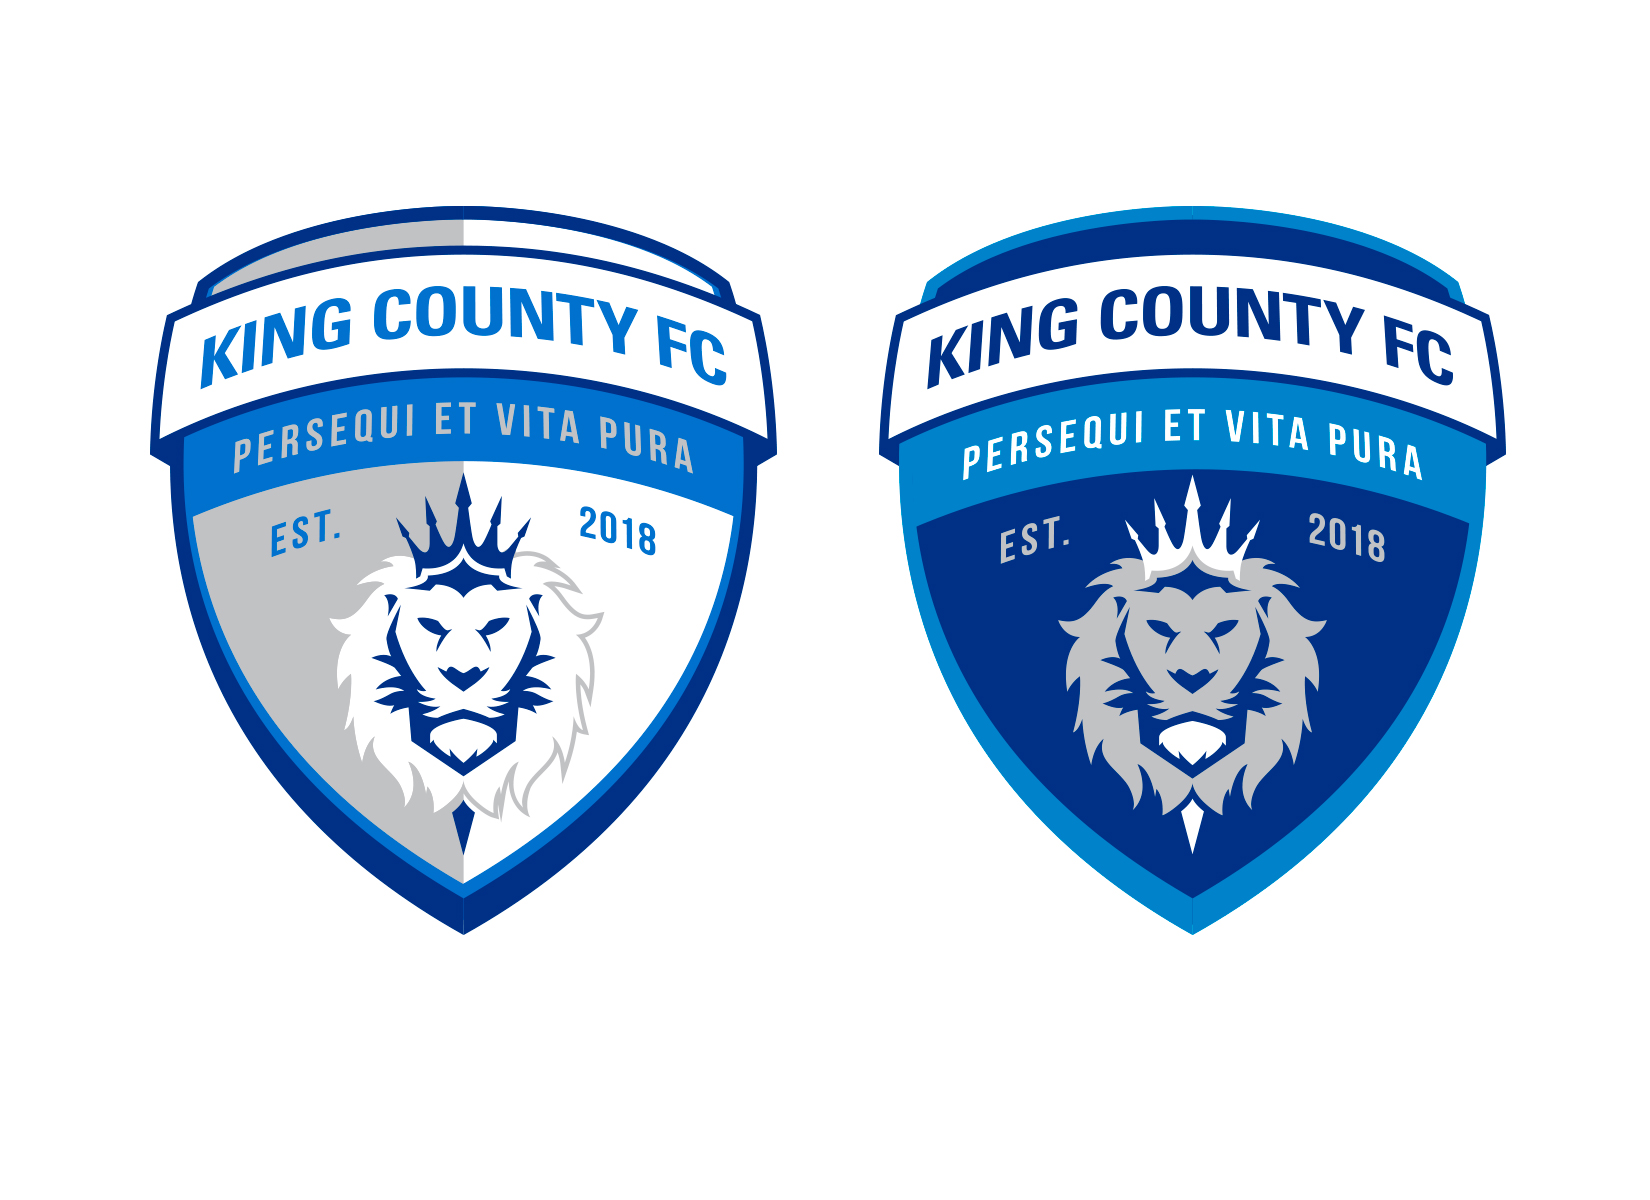 custom-soccer-crest-design-for-king-county-fc-1.jpg